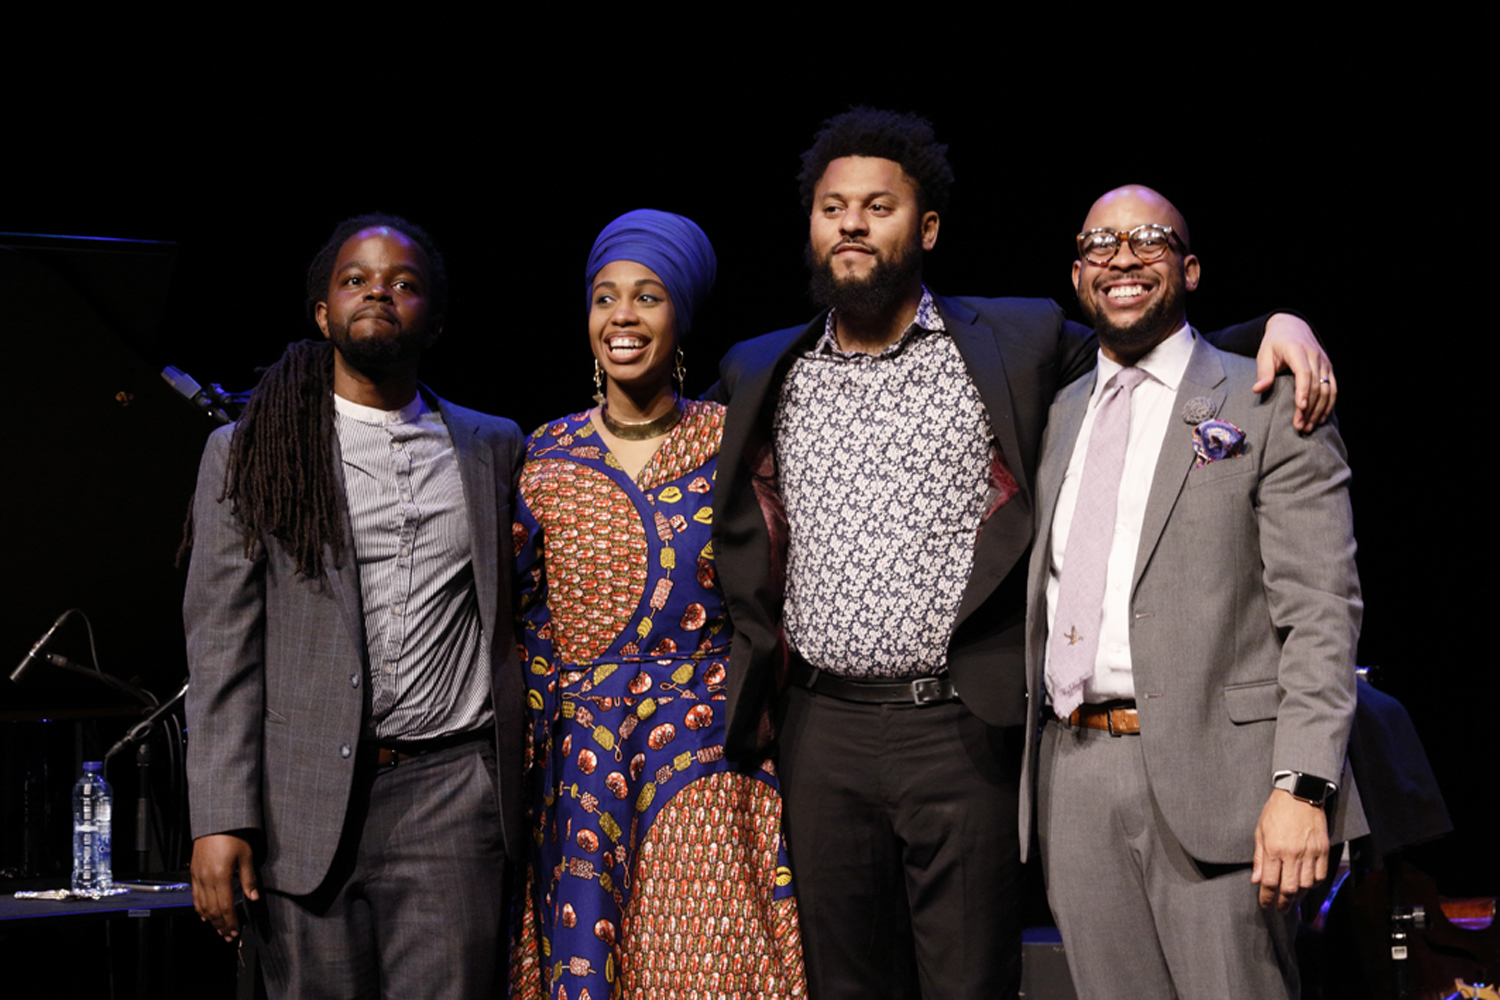 de band vlnr: Victor Gould, Jazzmeia Horn, Barry Stephenson, Henry Conerway III